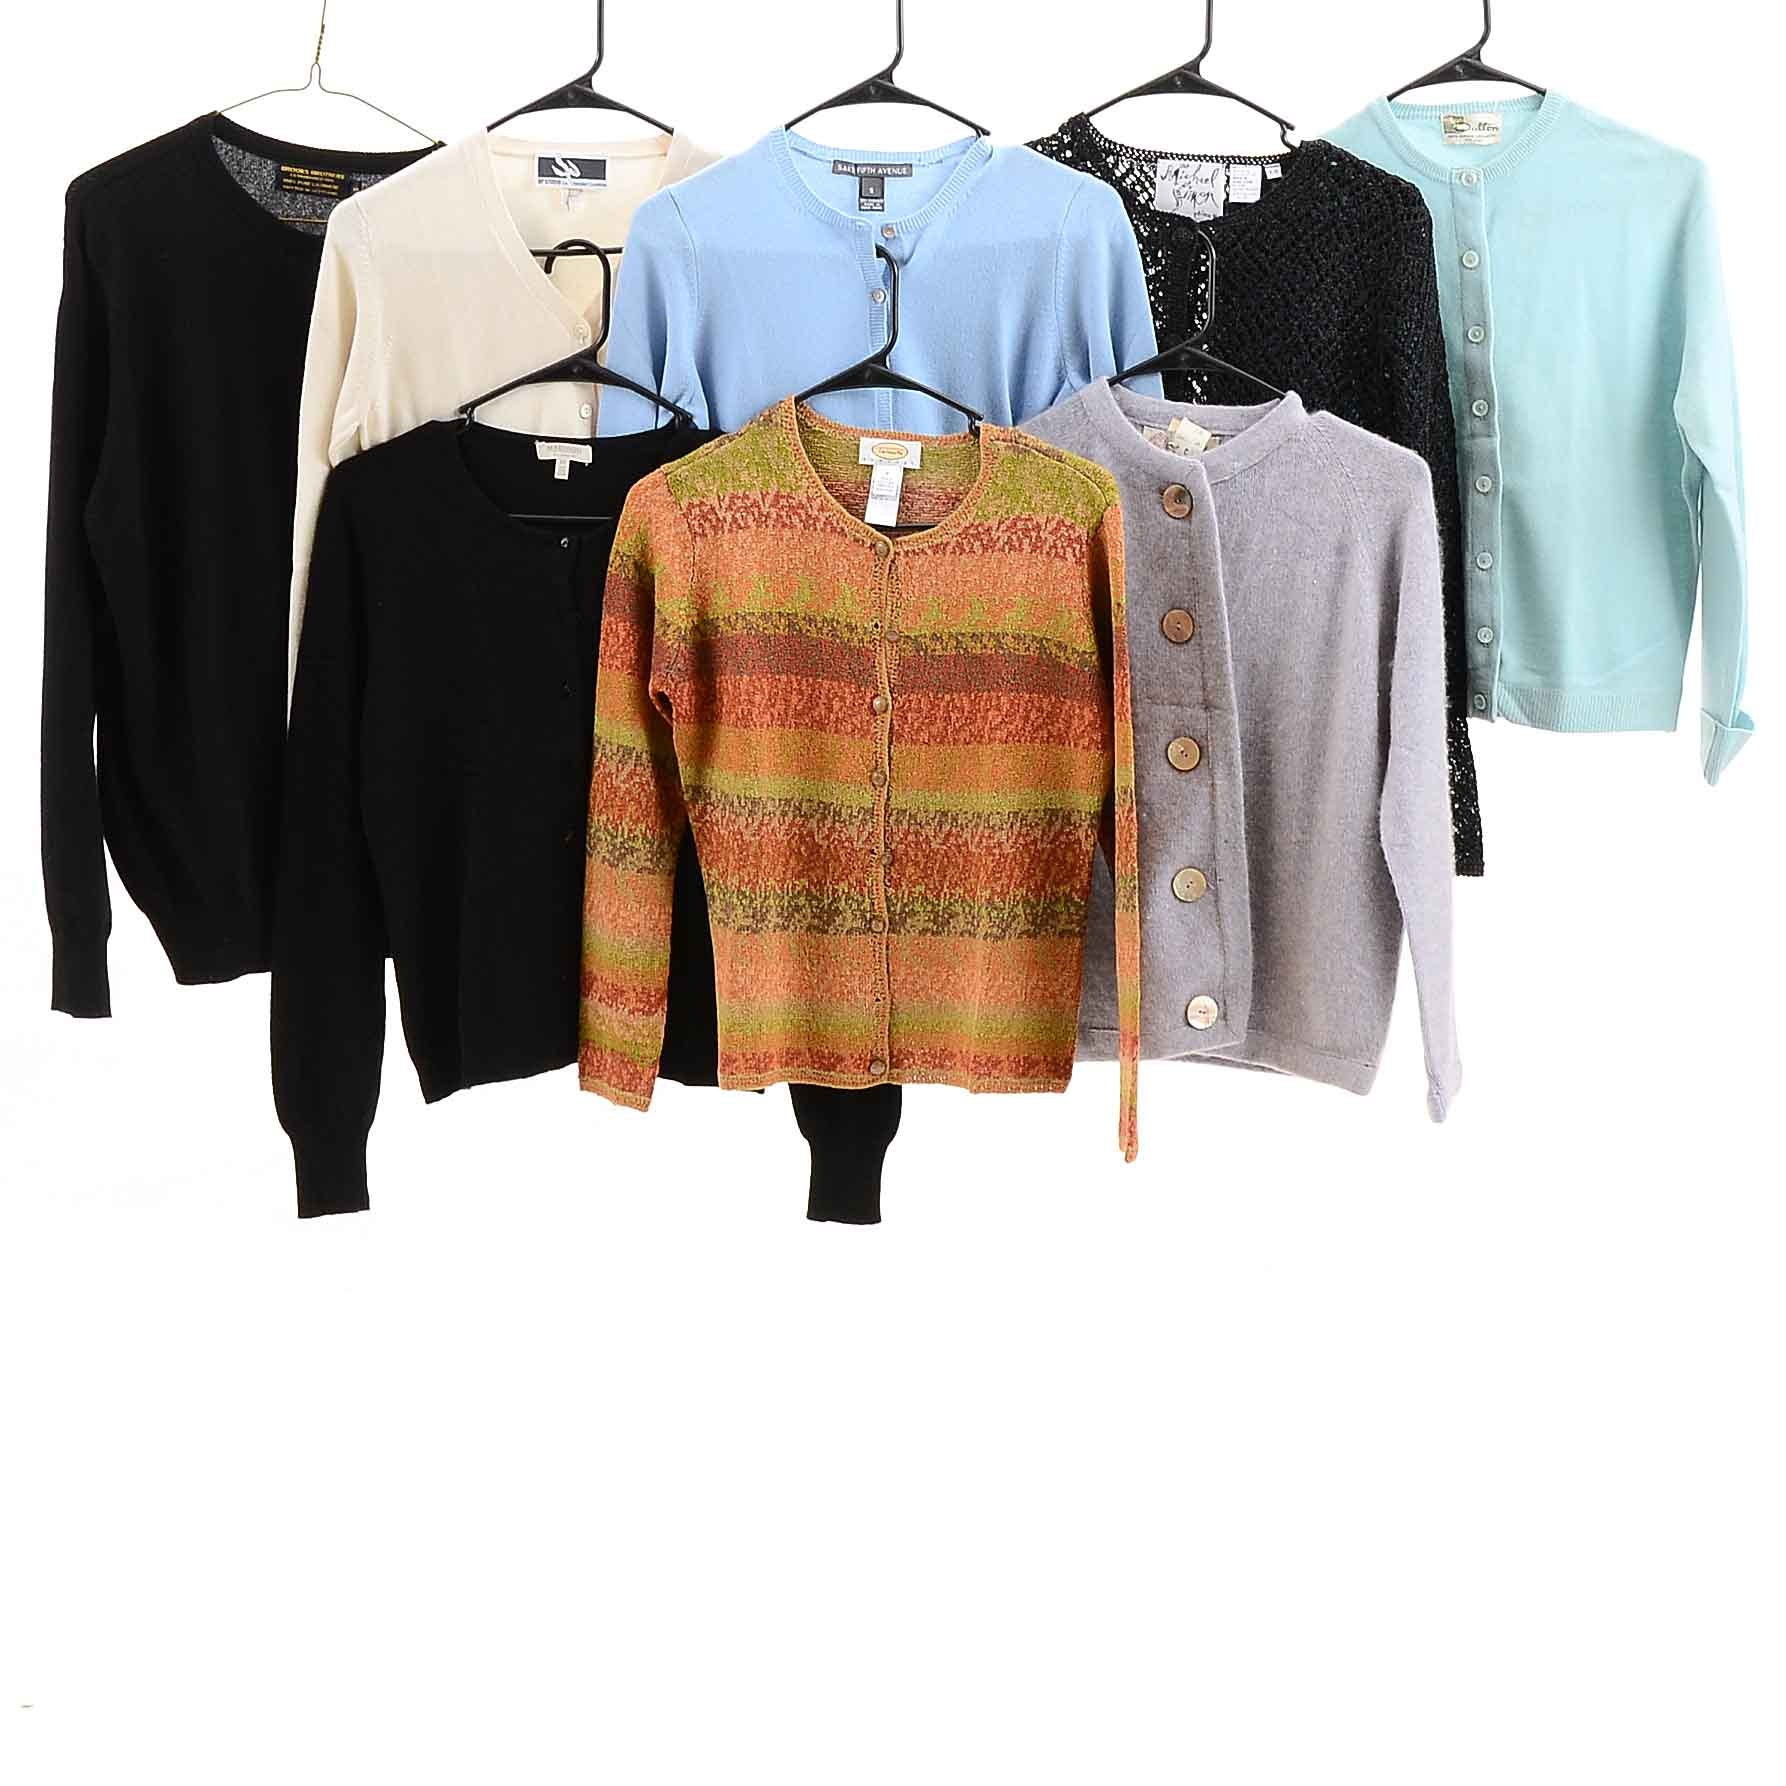 Collection of Women's Designer Cardigans Including Talbots and Brooks Brothers